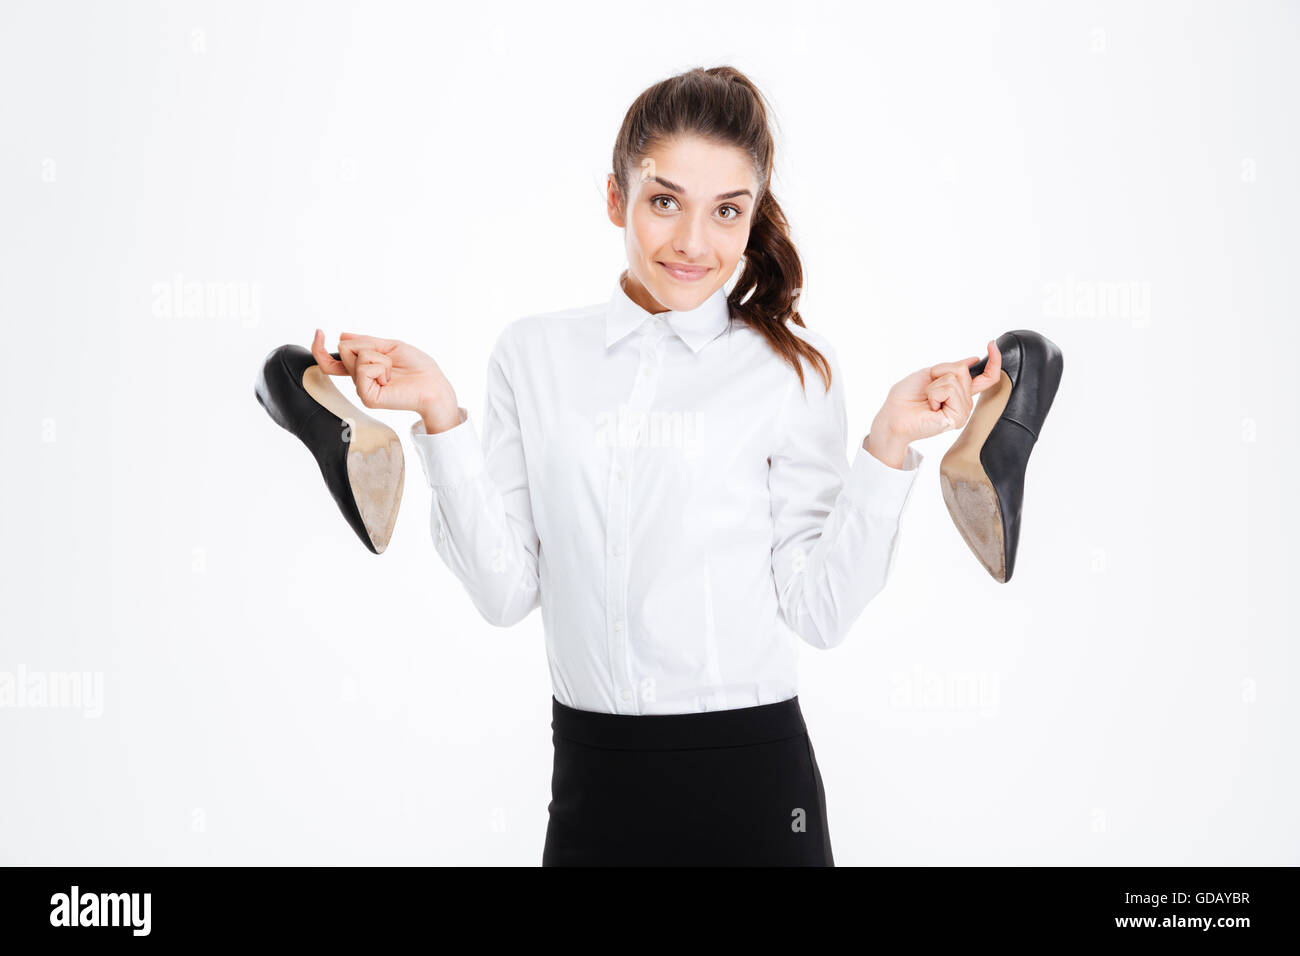 Happy cute young businesswoman holding high heels shoes over white background - Stock Image